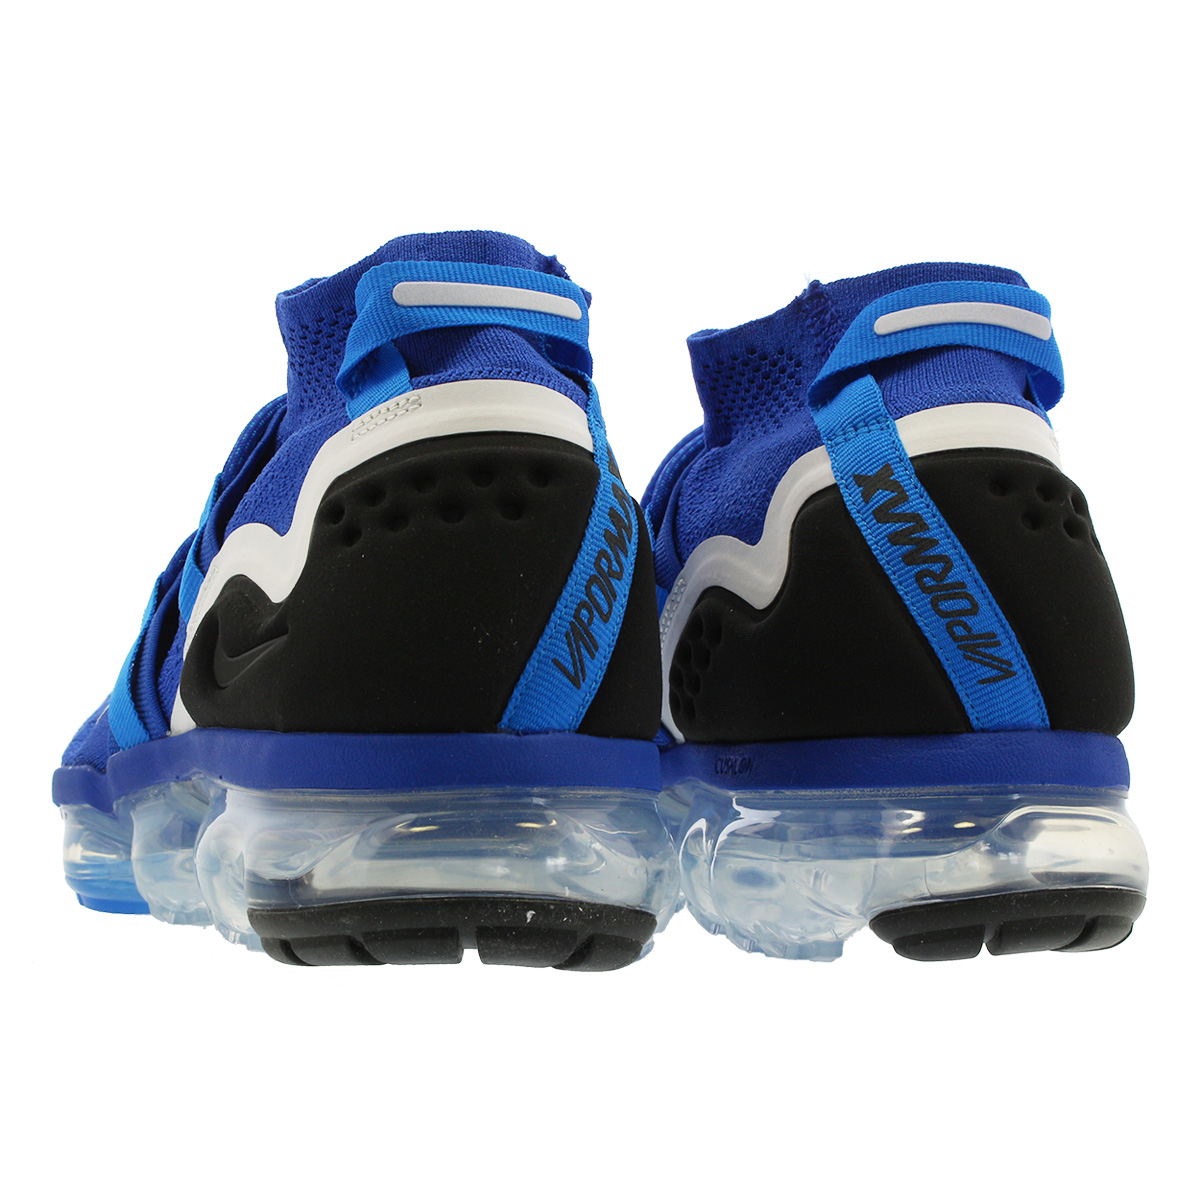 the latest c6232 ec51e NIKE AIR VAPORMAX FLYKNIT UTILITY Nike vapor max fried food knit utility  GAME ROYAL/BLACK/PHOTO BLUE/SUMMIT WHITE ah6834-400